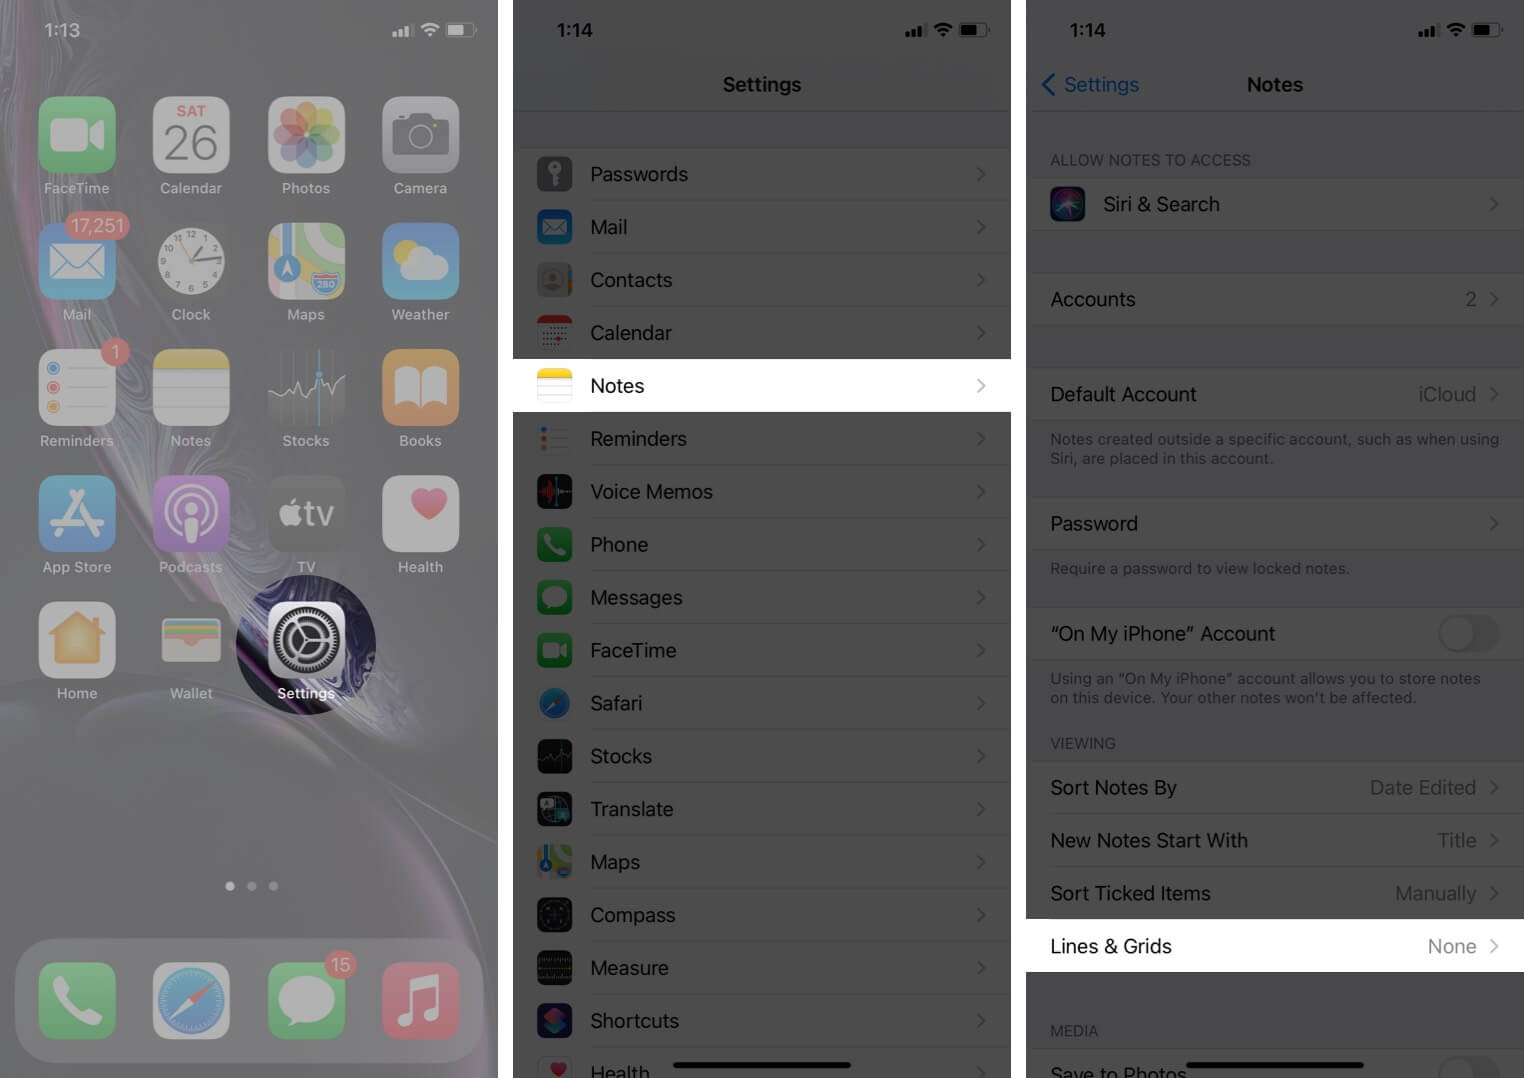 open settings tap on notes and then tap on lines and grids on iphone